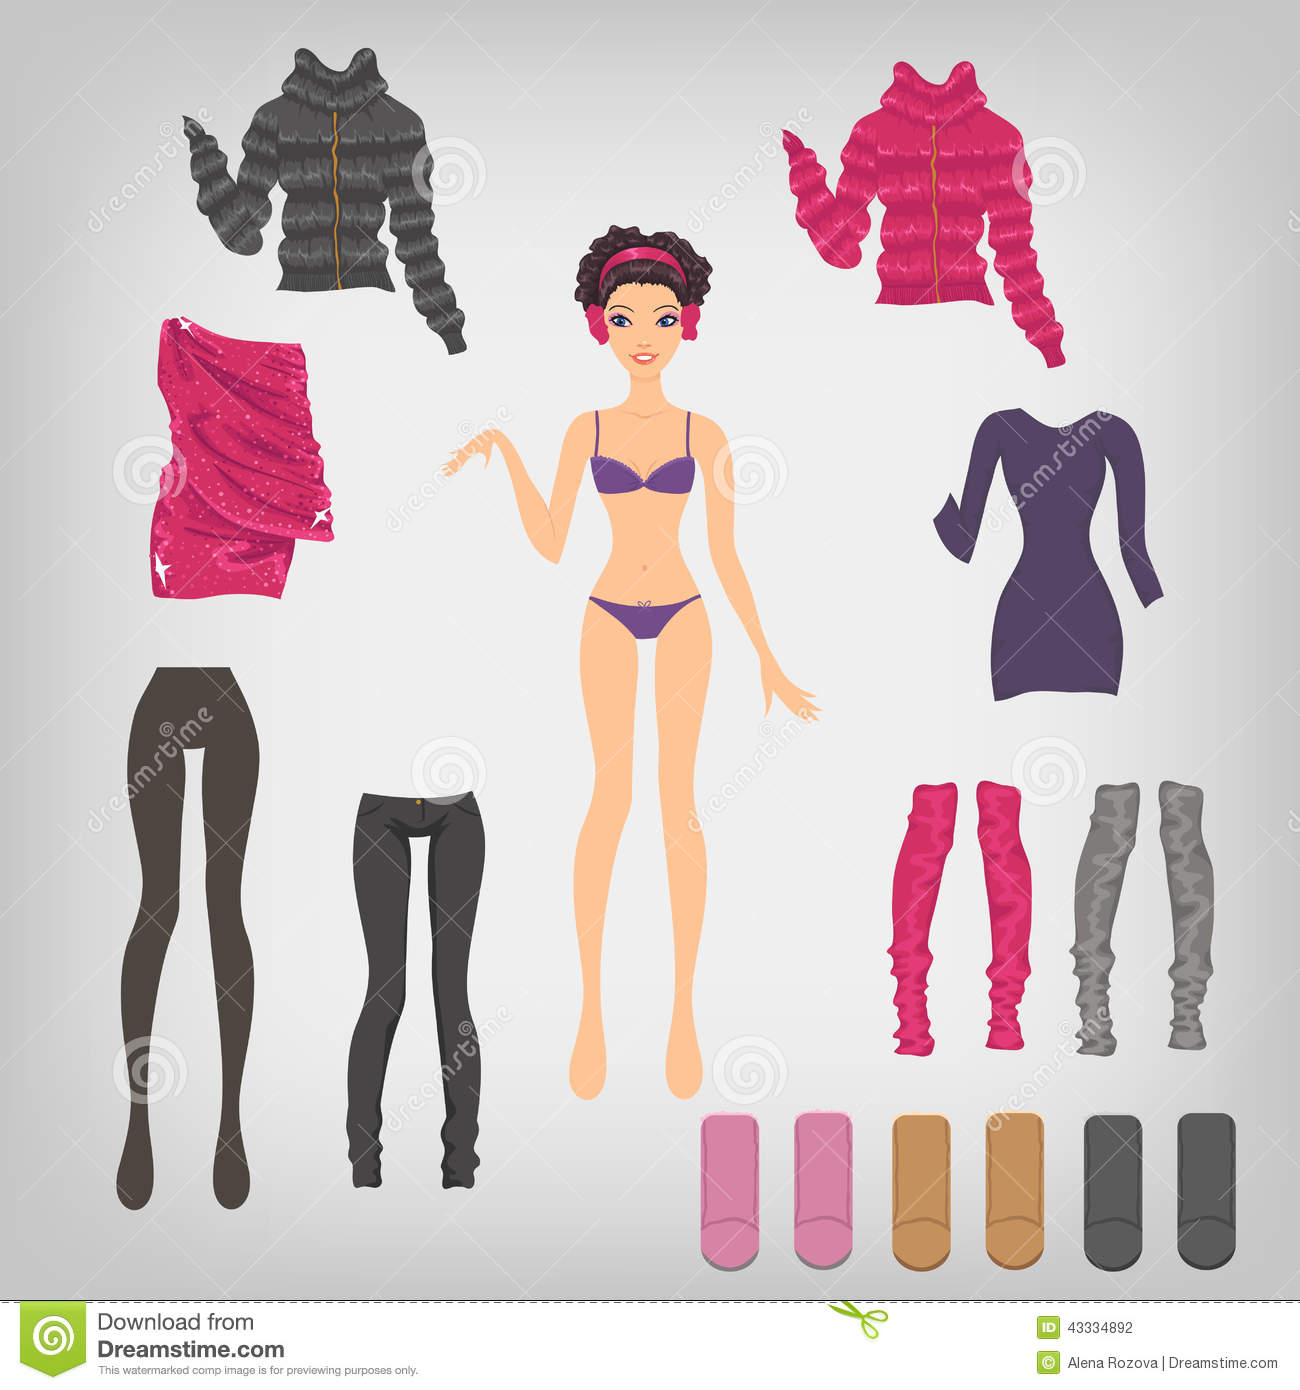 Dress up paper doll with an assortment of winter clothes